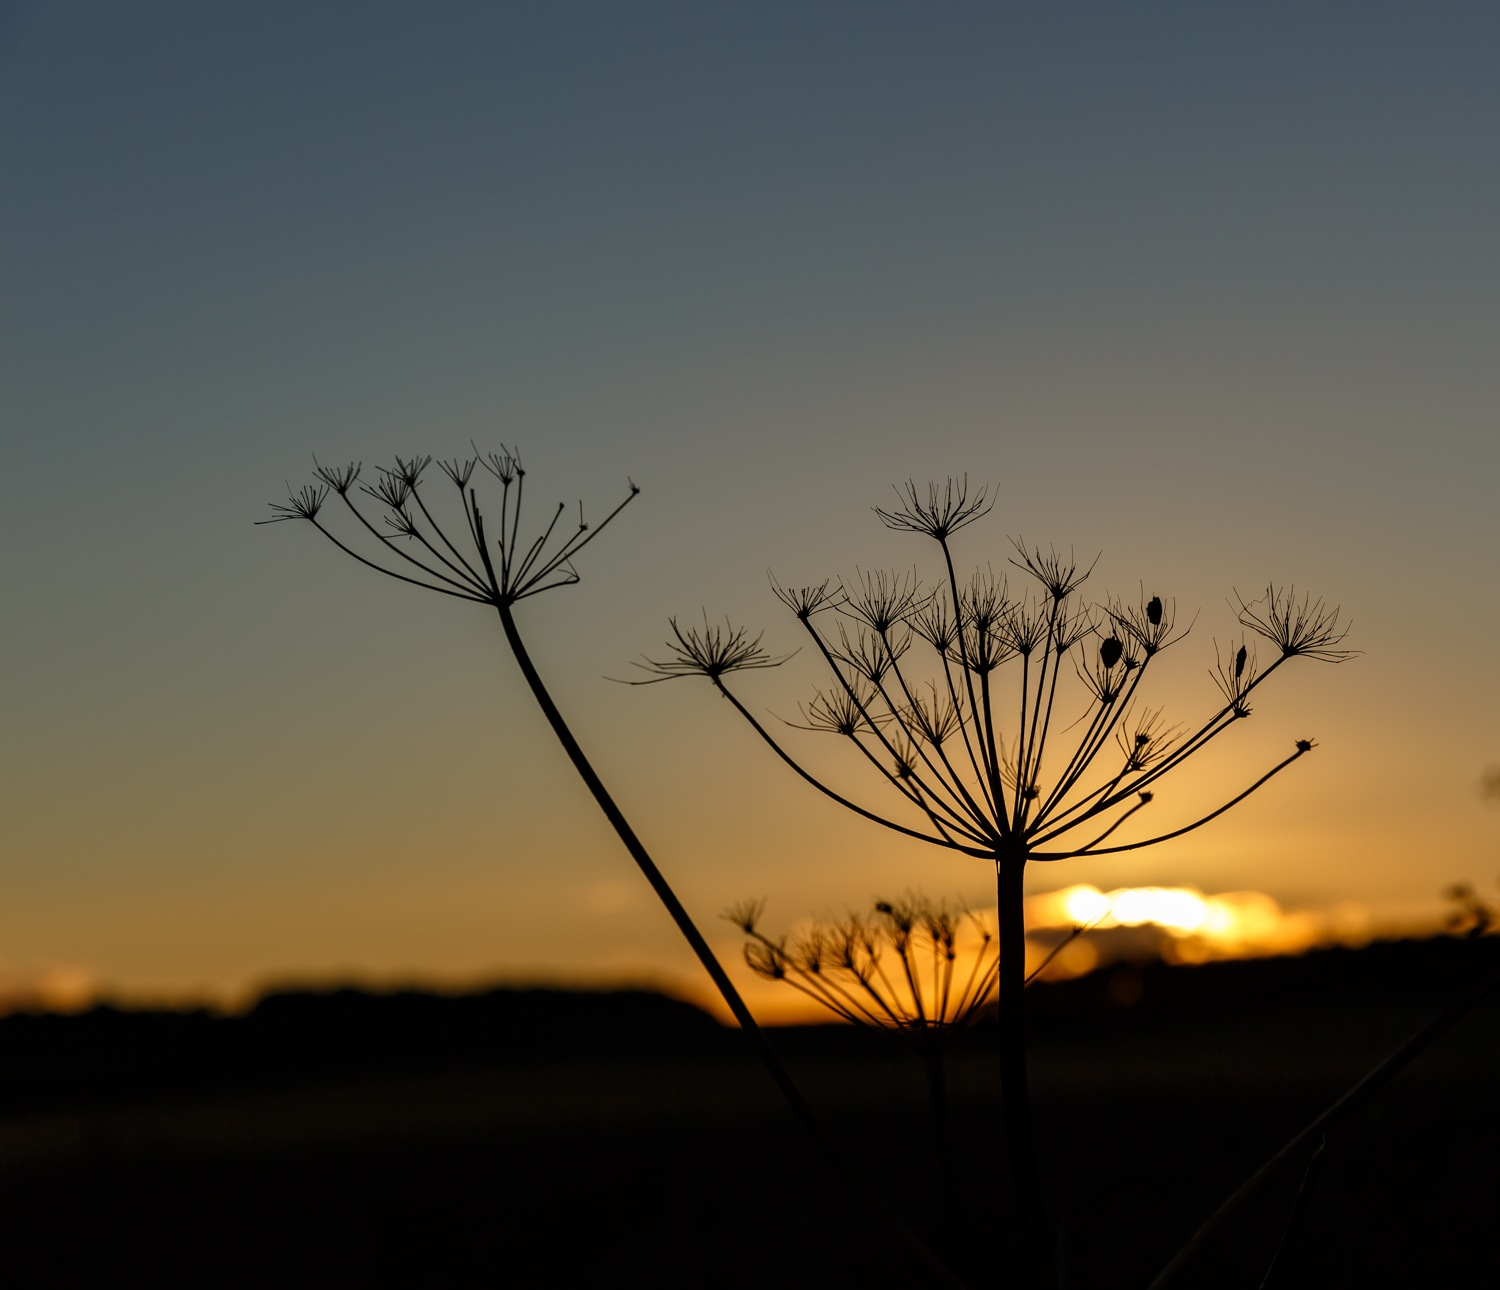 Love watching the sun go down #garton #sunset #nature #landscapephotography #ginar #driffield #easty by Gina Rayment